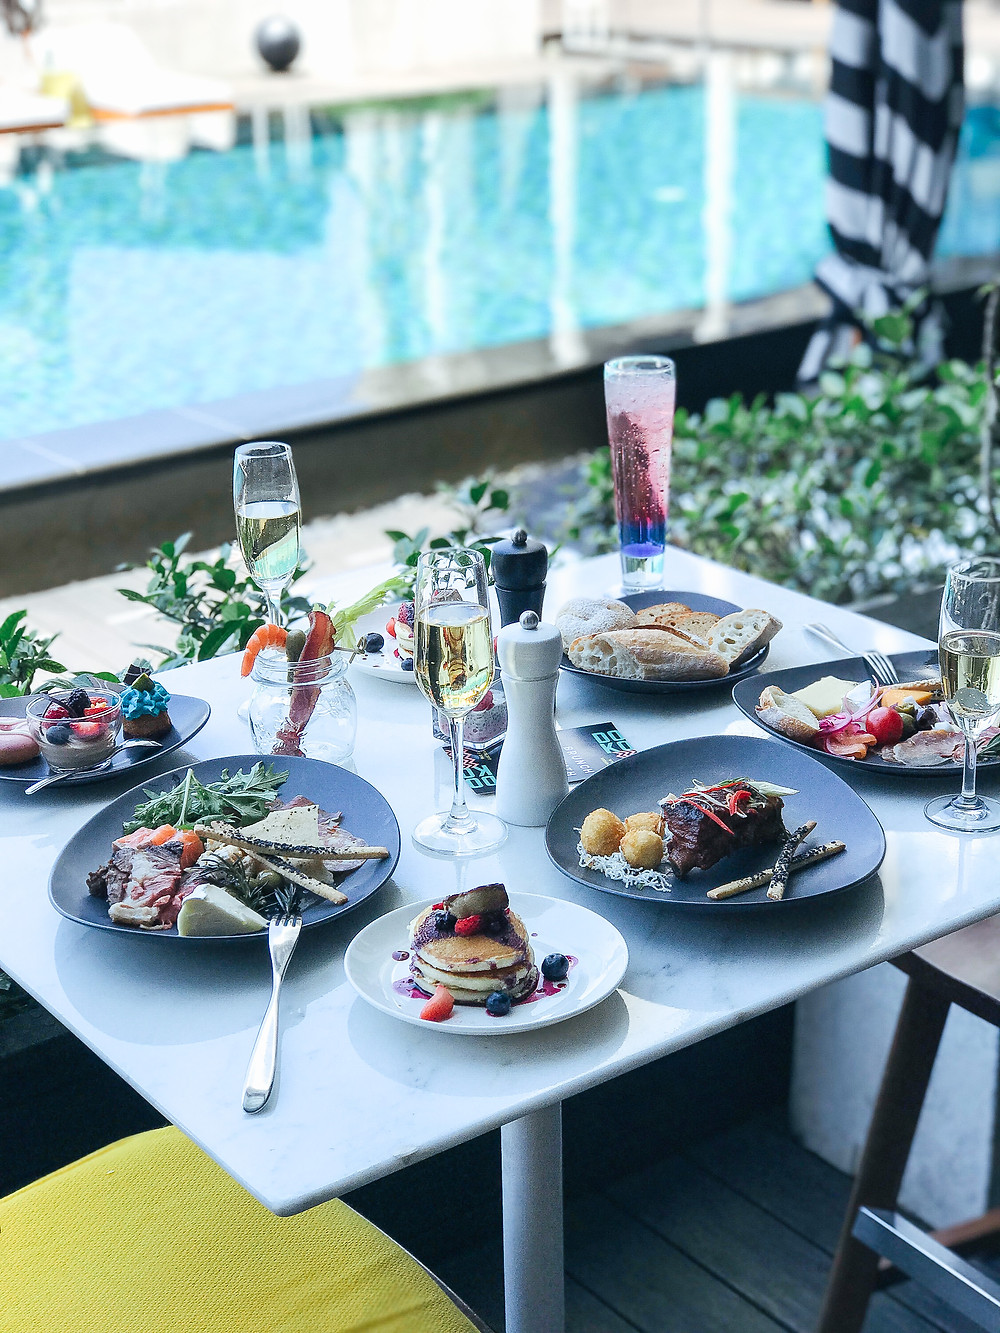 The Kitchen Table at W TAIPEI | 7 Taipei Brunch Spots with Outdoor Seating | Food | A Style Alike